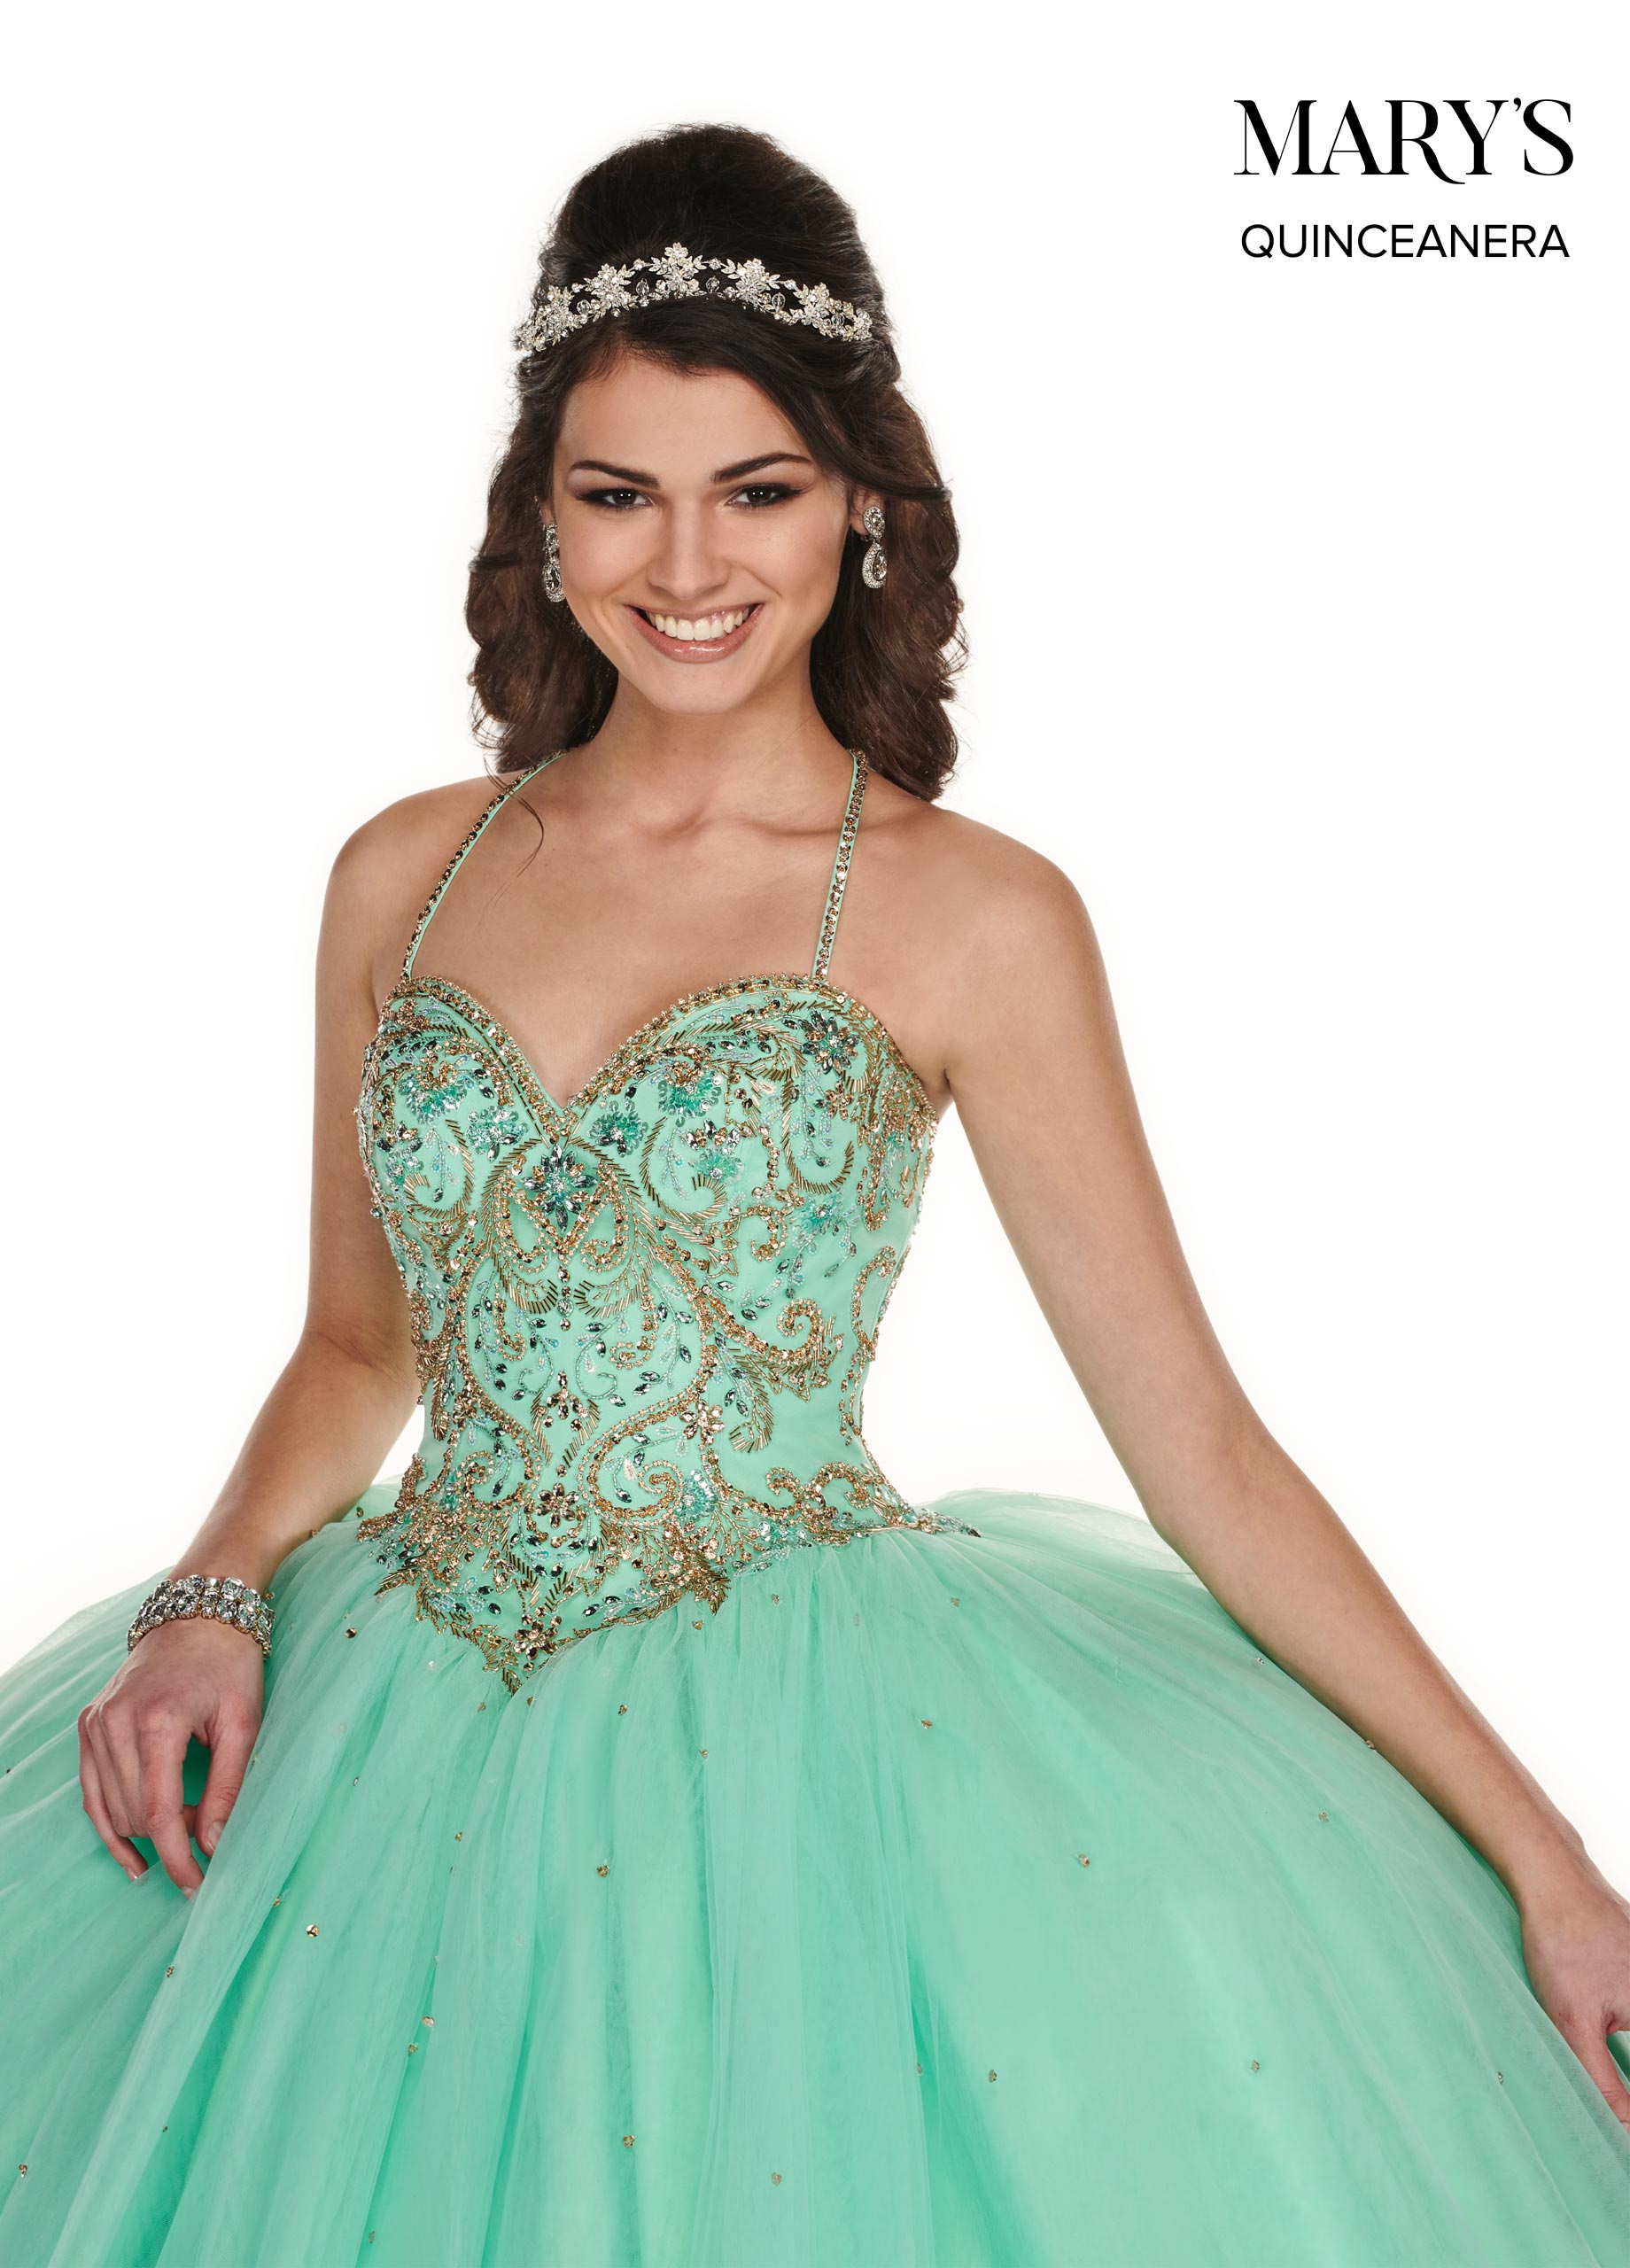 Marys Quinceanera Dresses | Mary's Quinceanera | Style - MQ1054